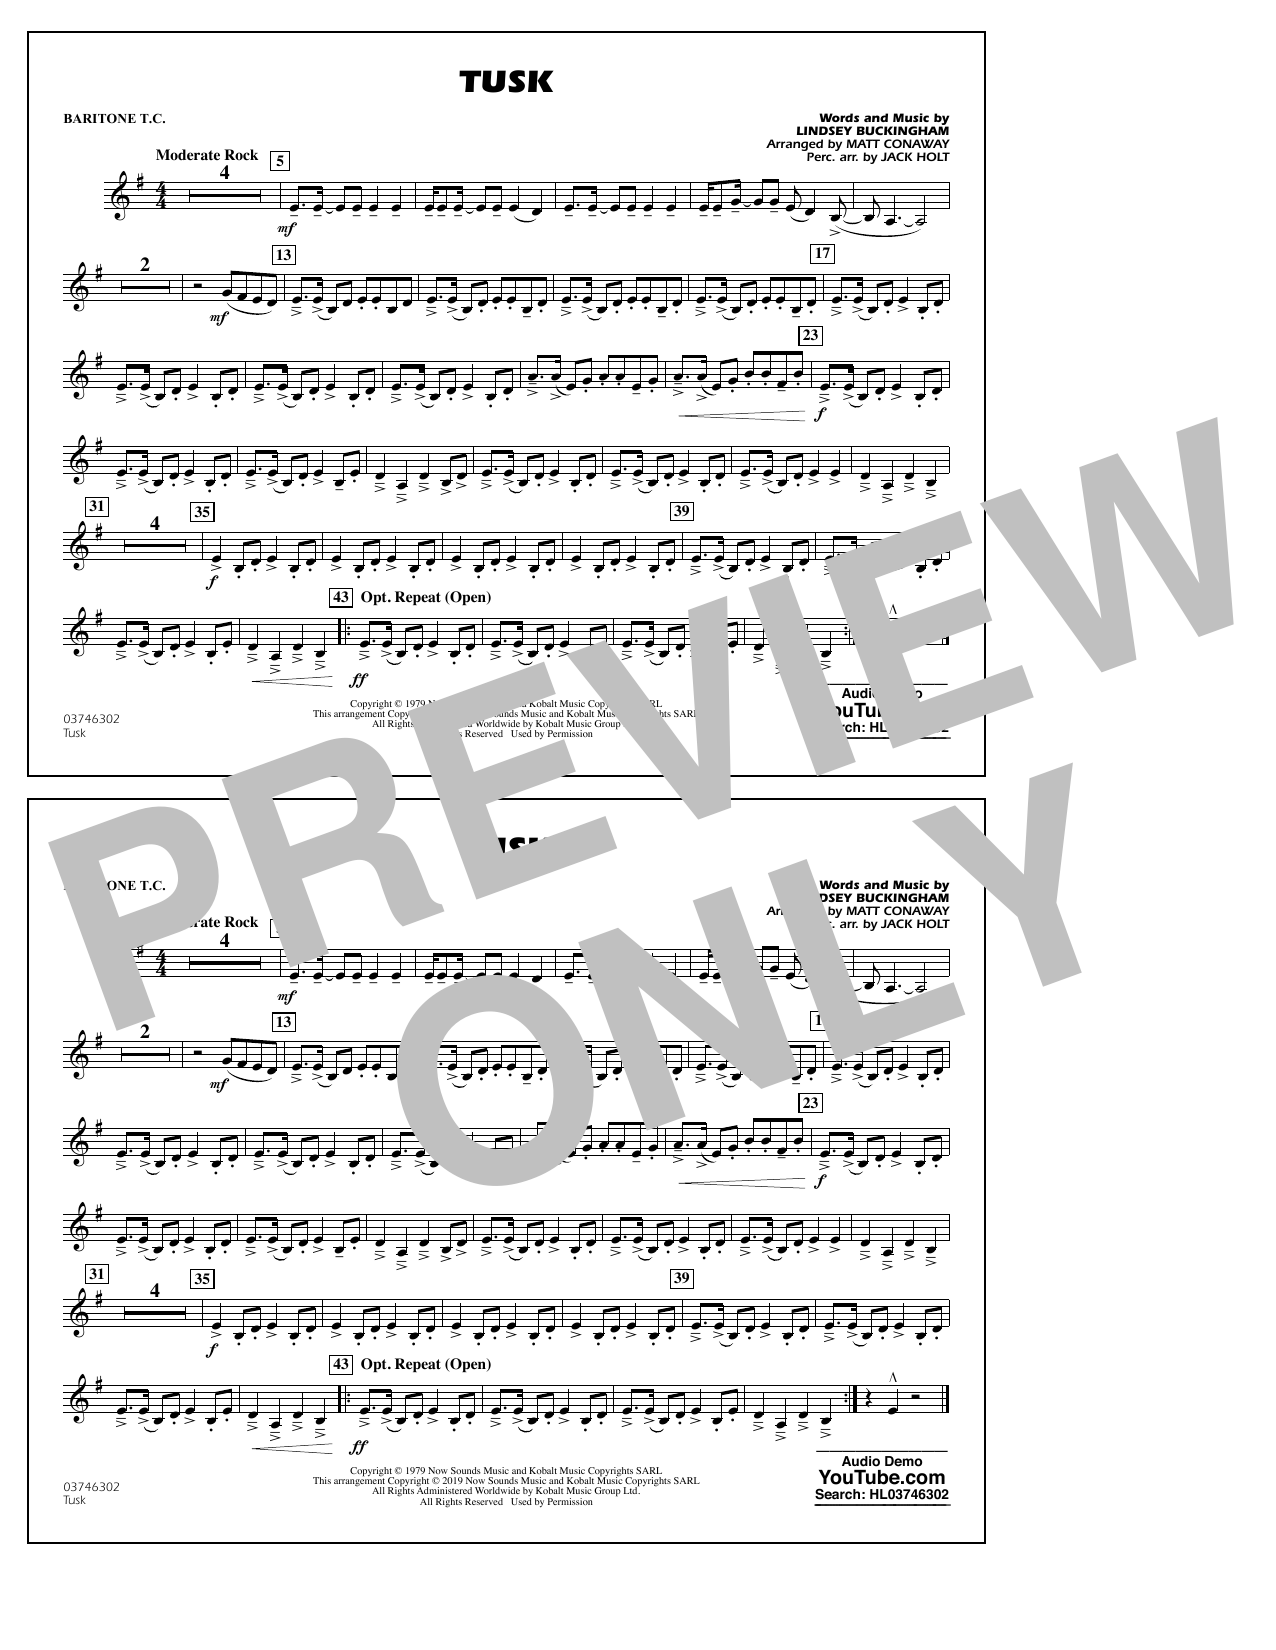 Fleetwood Mac Tusk (arr. Matt Conaway) - Baritone T.C. sheet music preview music notes and score for Marching Band including 1 page(s)